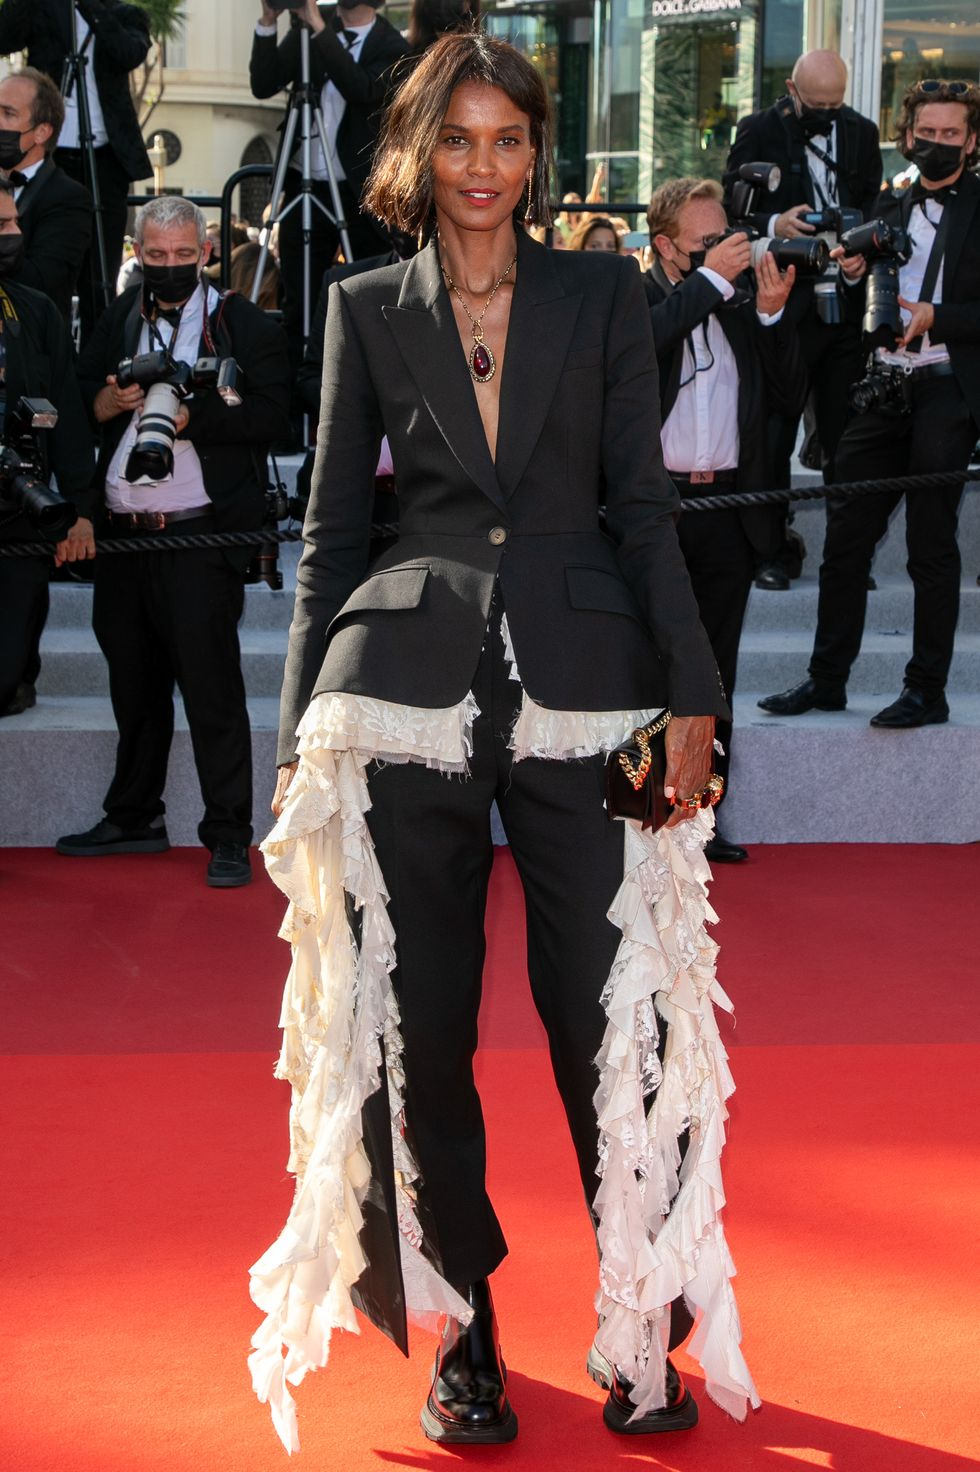 liya-kebede-in-alexander-mcqueen-suit-oss-117-from-africa-with-love-and-closing-ceremony